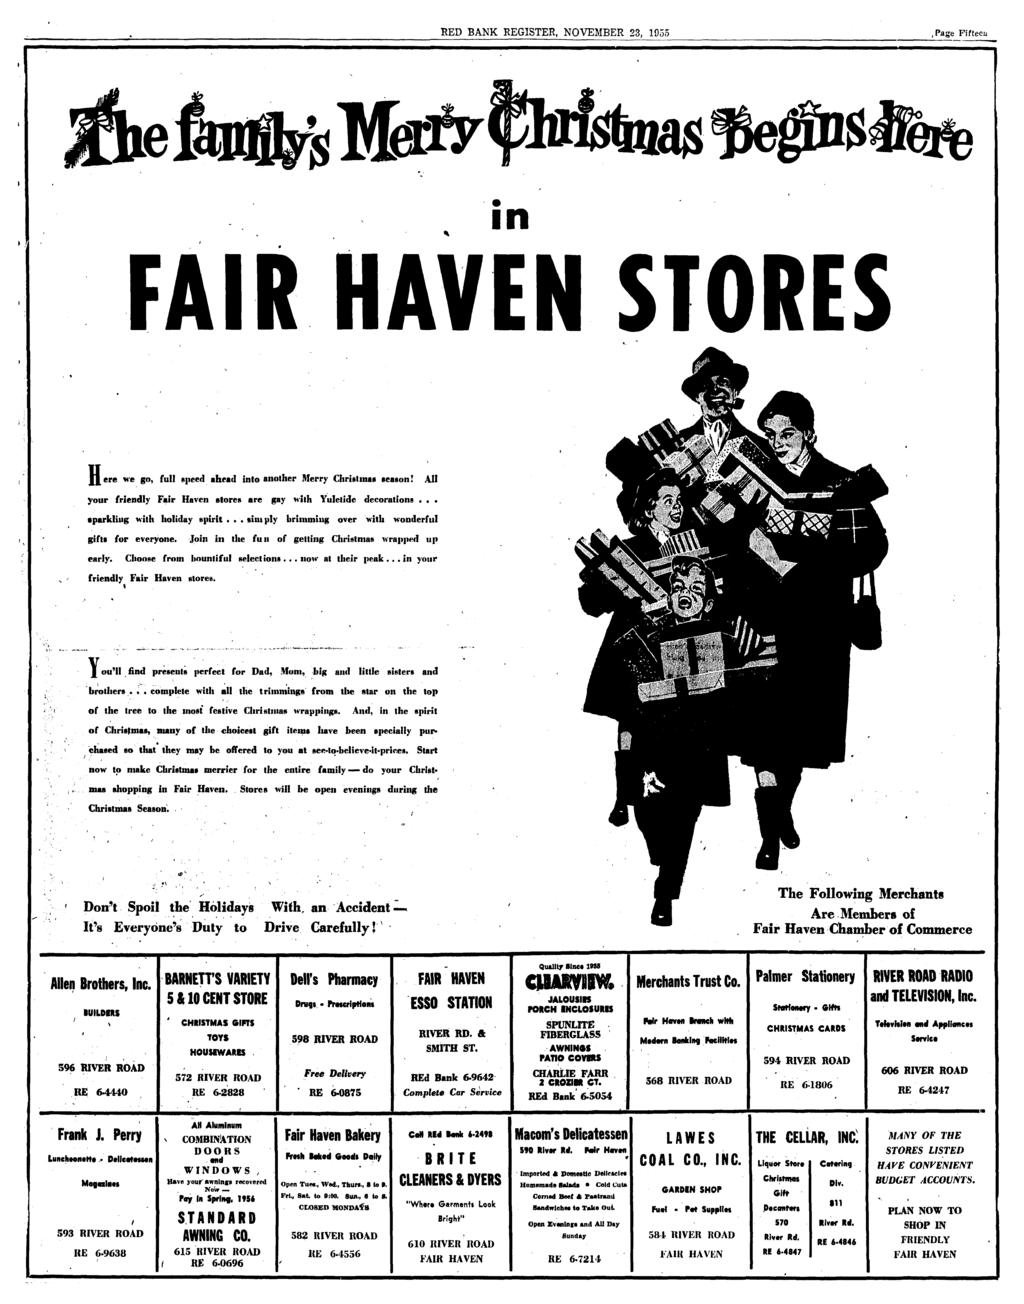 RED BANK REGISTER NOVEMBER 23 1955Page Fifteen In FAIR HAVEN STORES Ffere